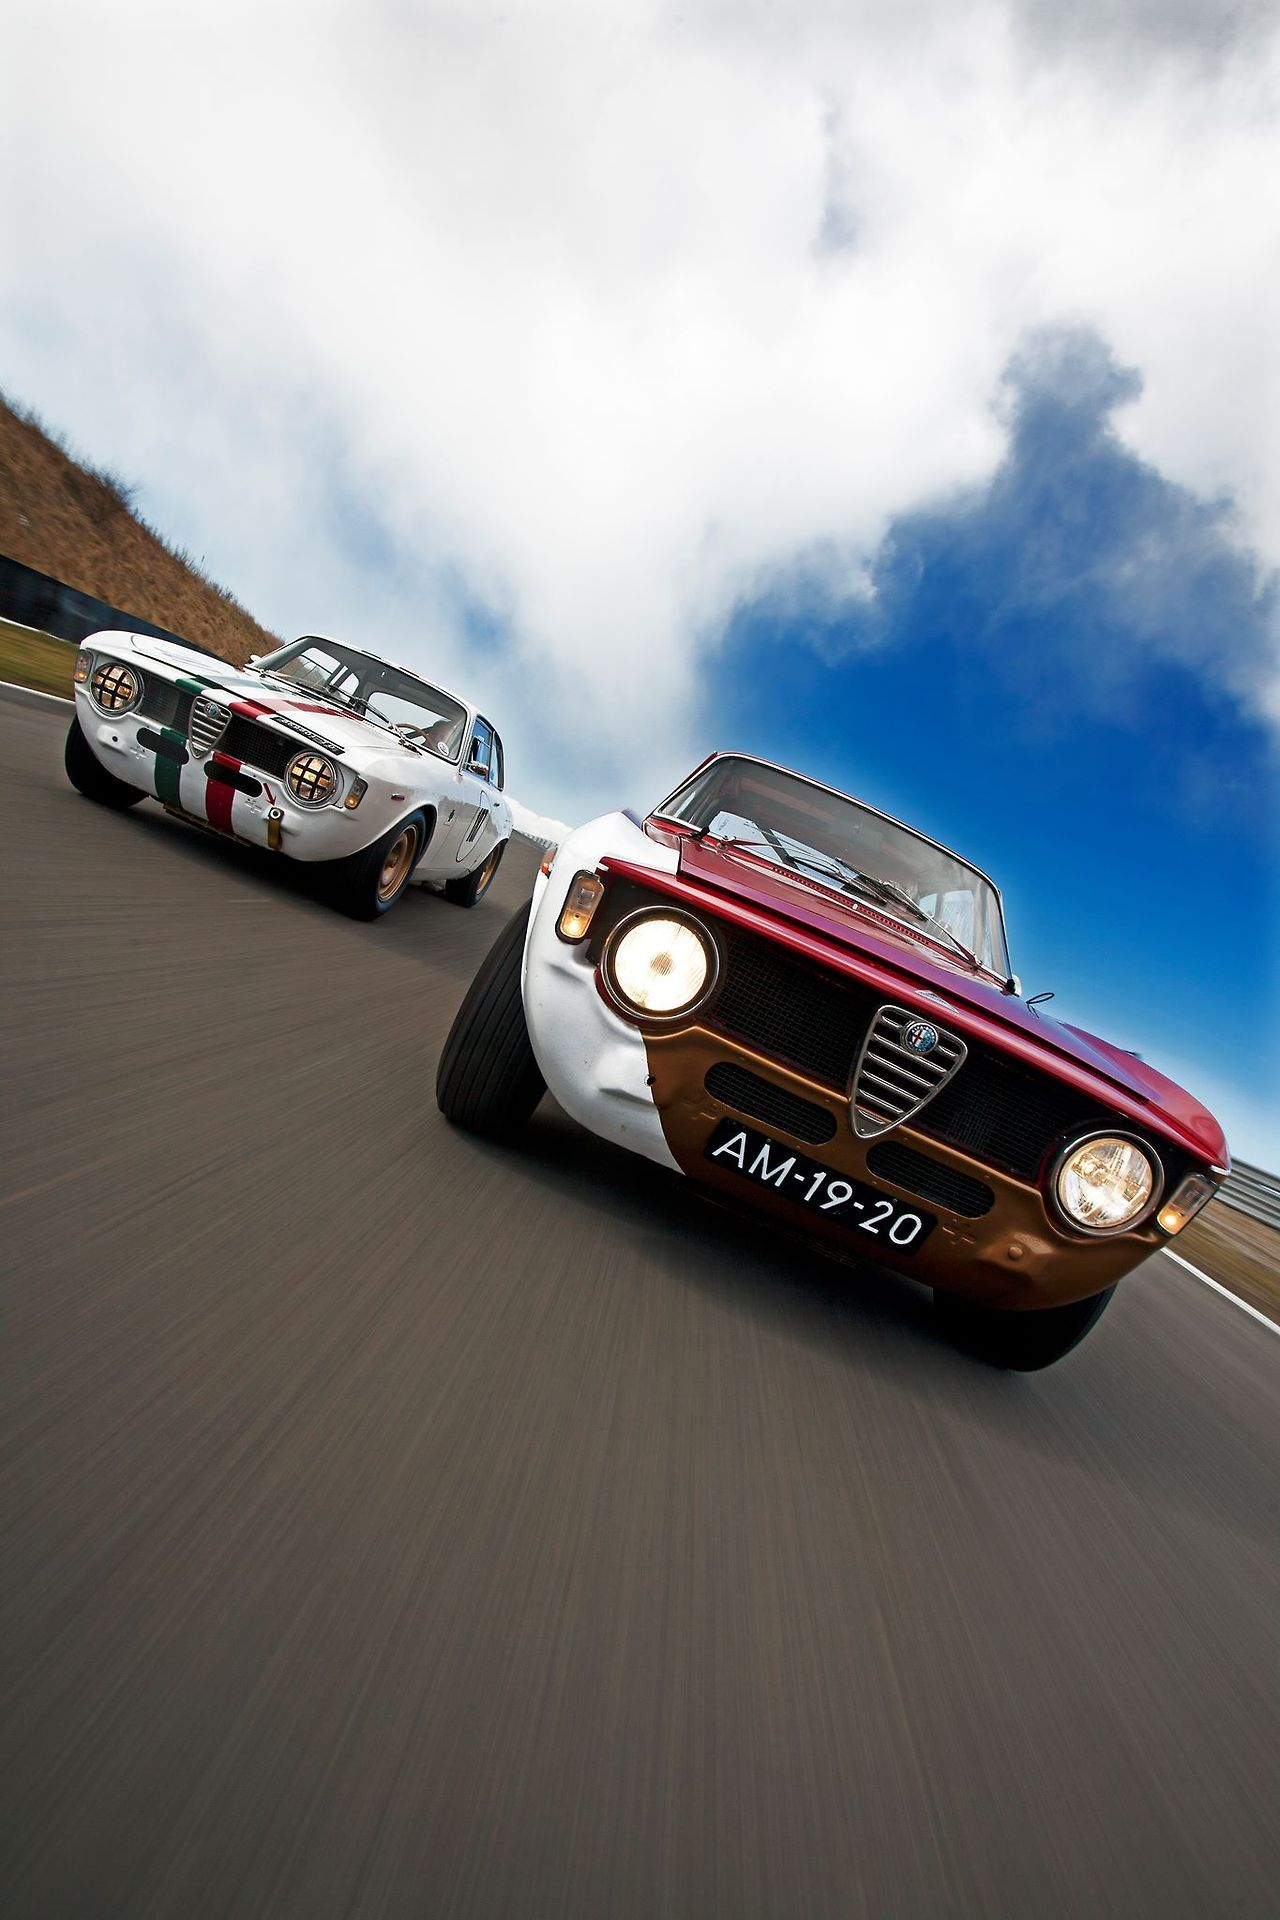 ♂ Alfa Romeo GTA 1300 Junior Corsa (in foreground) Giulia Sprint GTA Corsa (in background) #cars #wheels